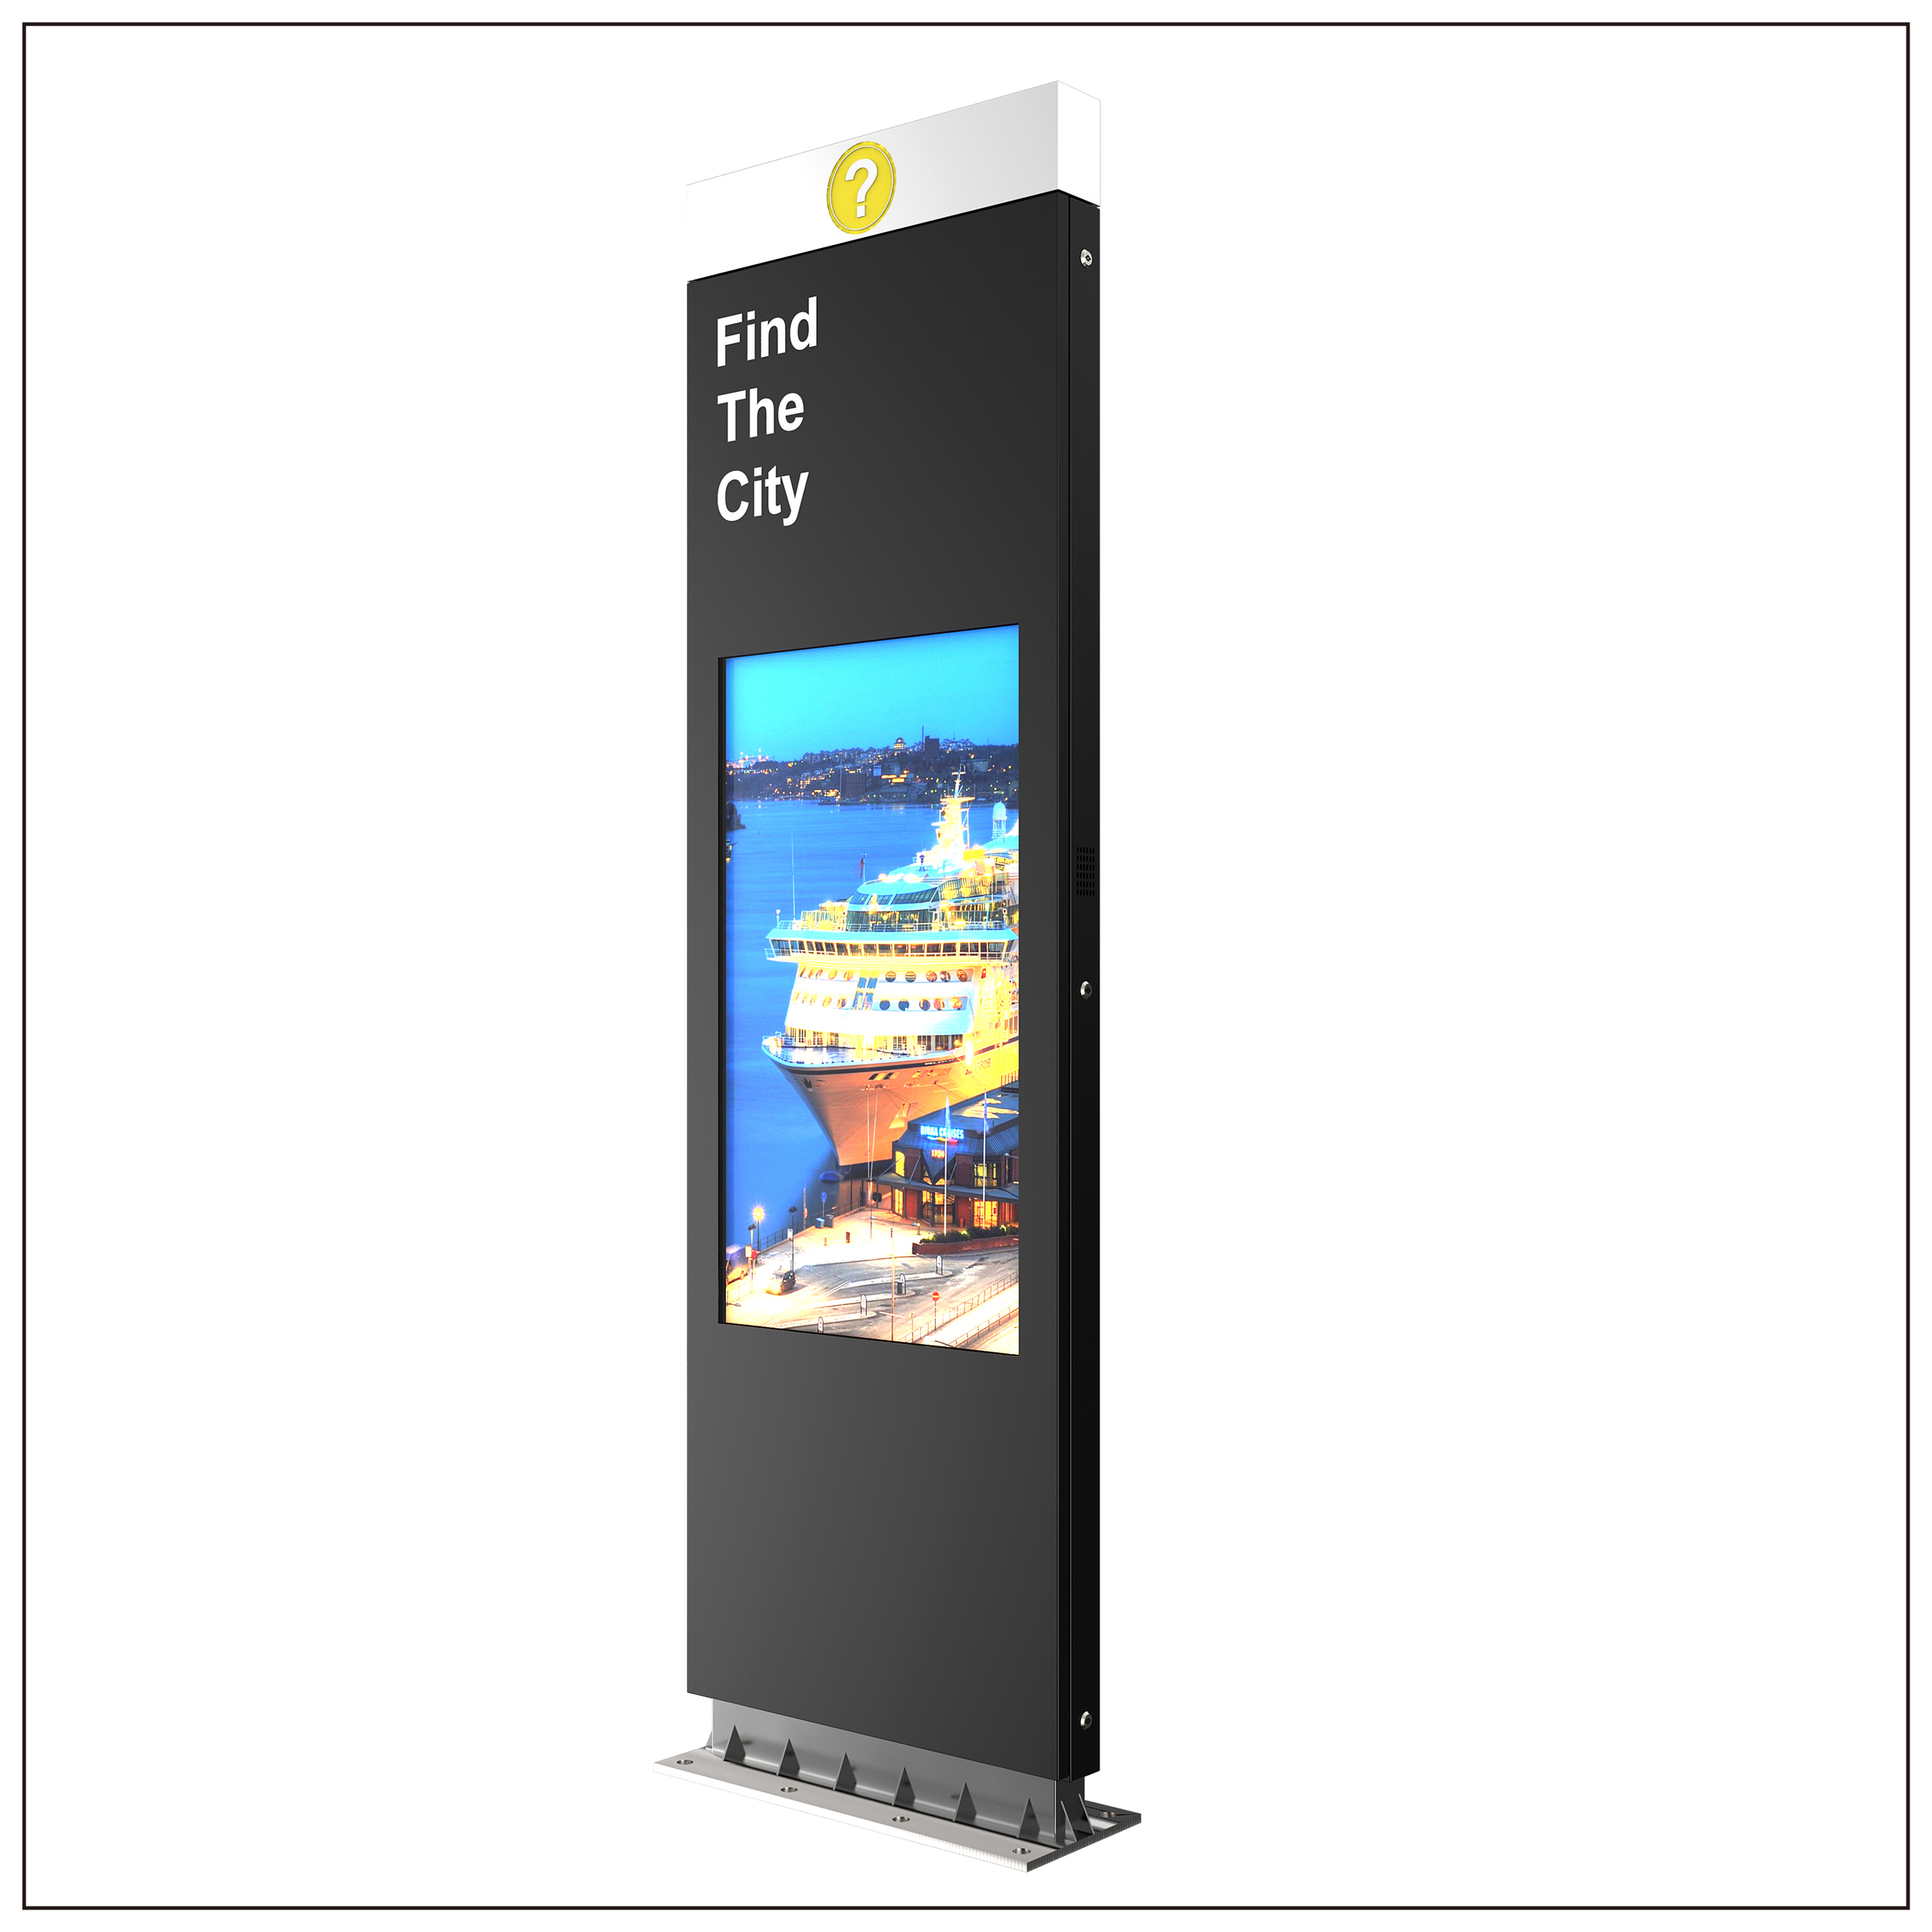 Digital Signage and kiosk technologies have created intelligent, interactive ways making smart travel even smarter.   Wayfinding has evolved over the last couple of decades from static paper signage to electronic wayfinding to interactive wayfinding. This transition in large part has been the result of new technologies becoming available for airports, stations and terminals to leverage. The advent of digital signage also has led to significant improvements in wayfinding in facilities such as airports, where there are often multiple terminals and where large volumes of people need to be moved through the space quickly.